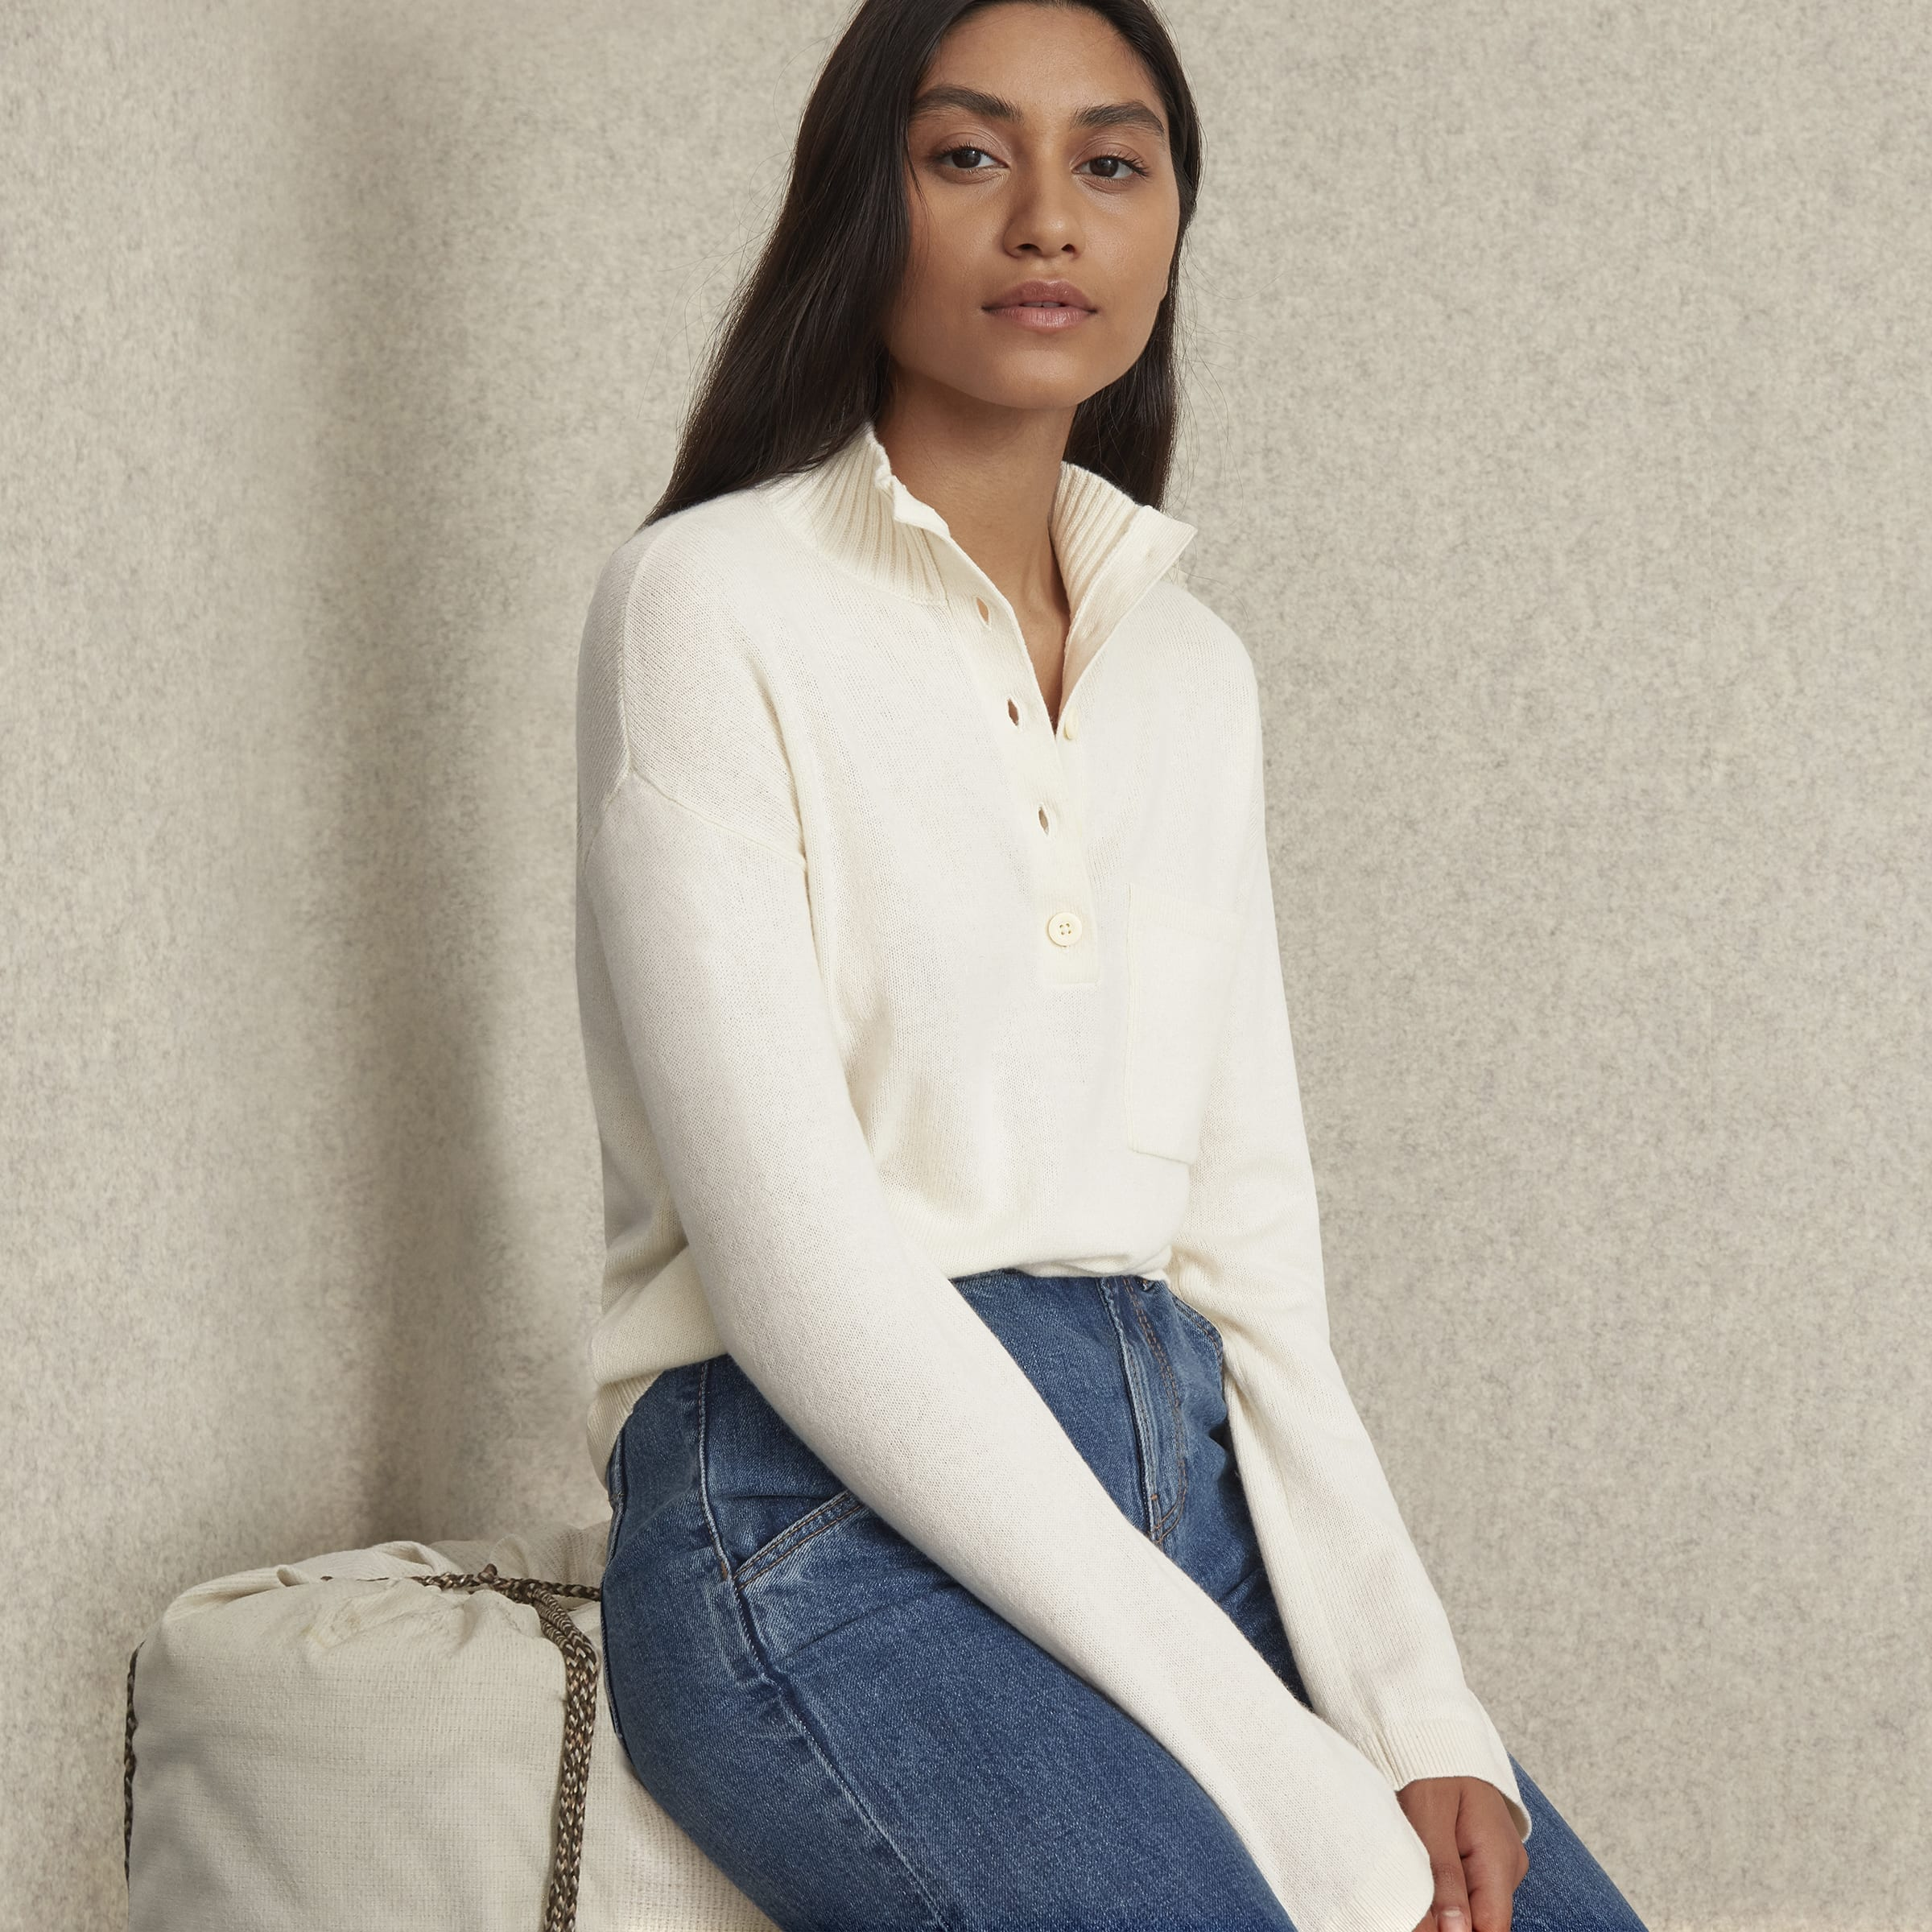 Everlane: Up to 50% off sale styles!